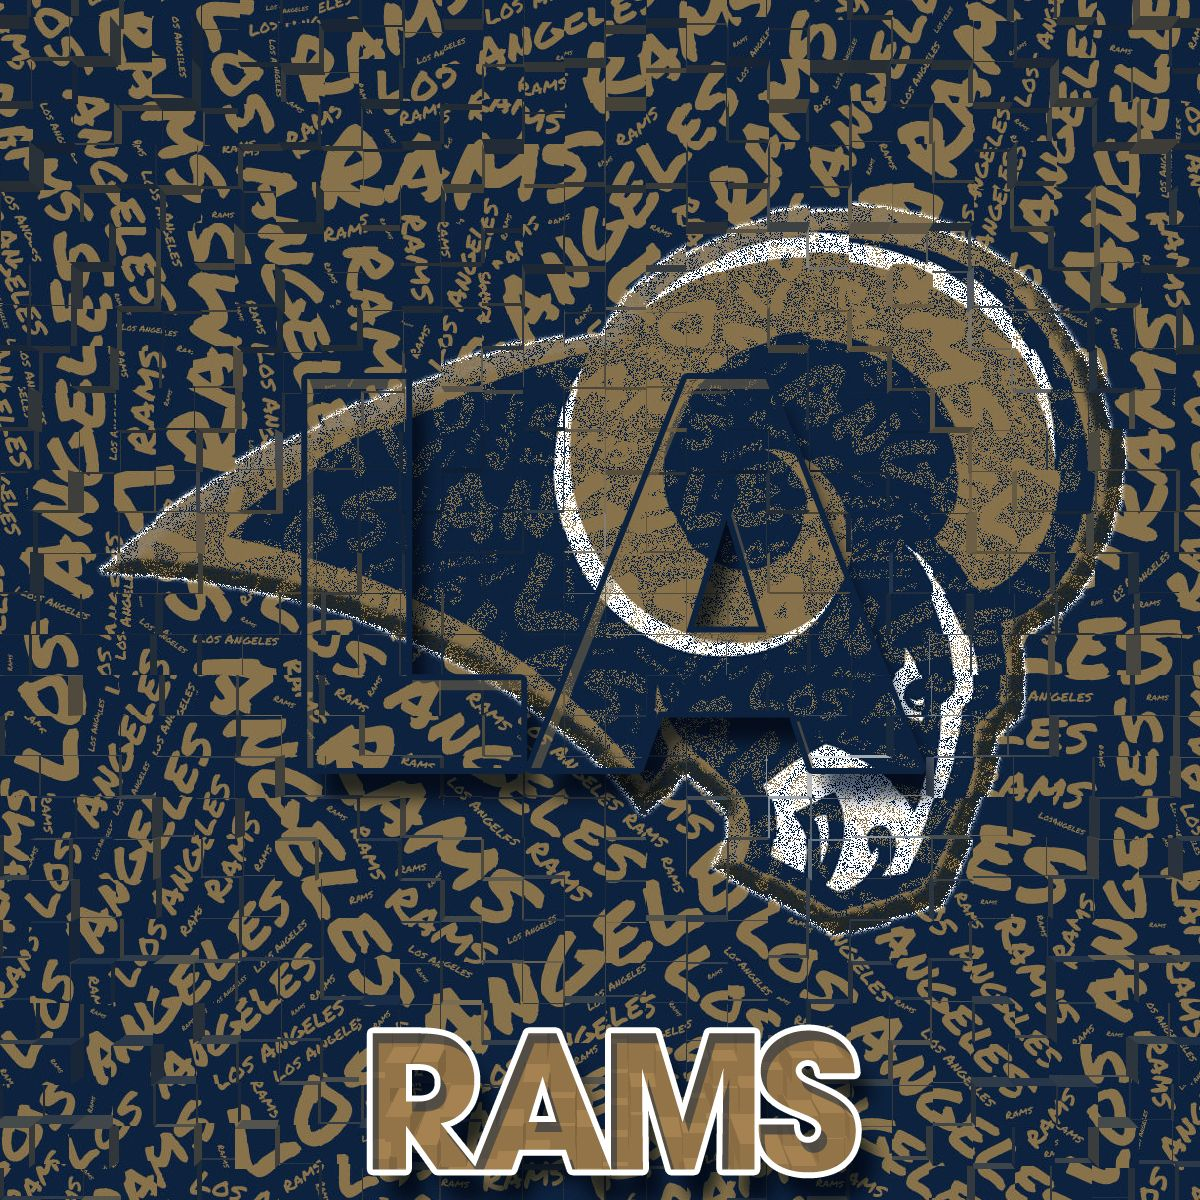 Los Angeles Rams by whostherawest on DeviantArt